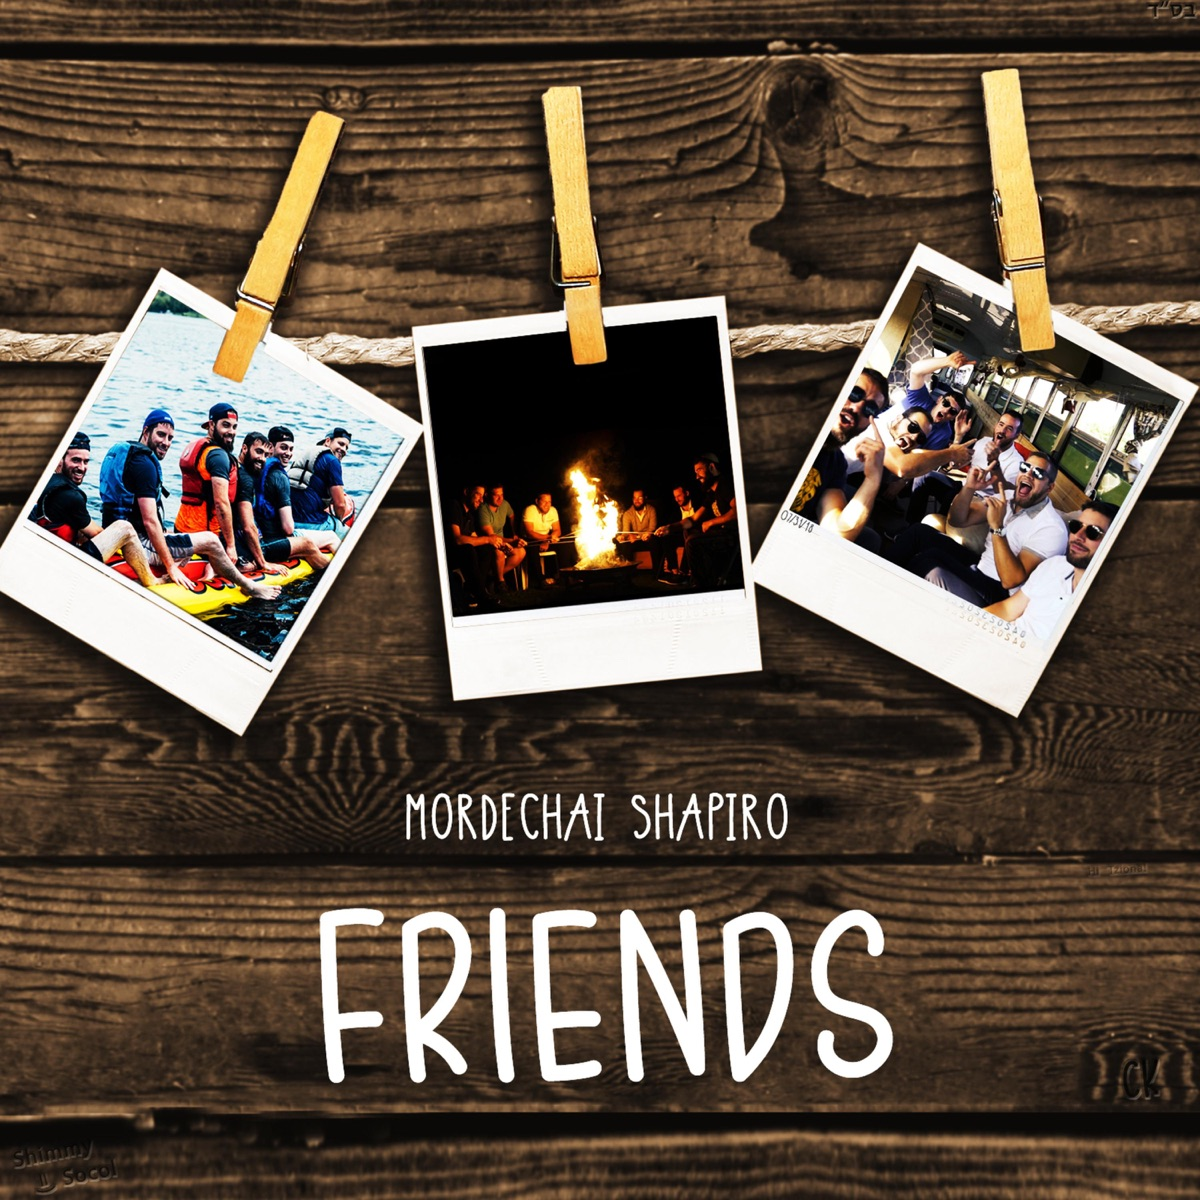 Friends - Single Mordechai Shapiro CD cover